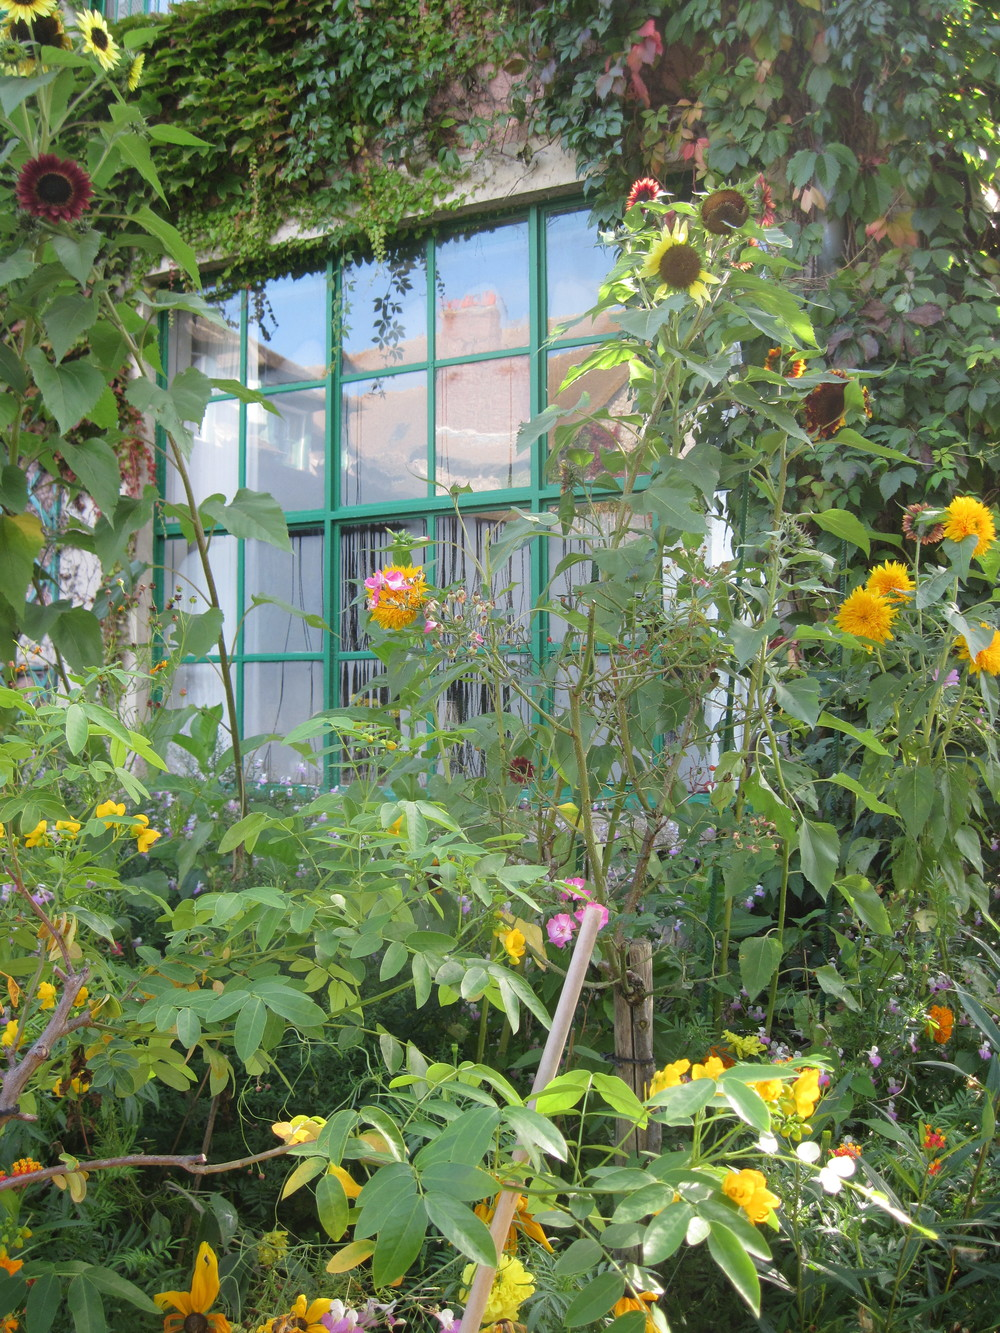 Monets house w: sunflowers.JPG